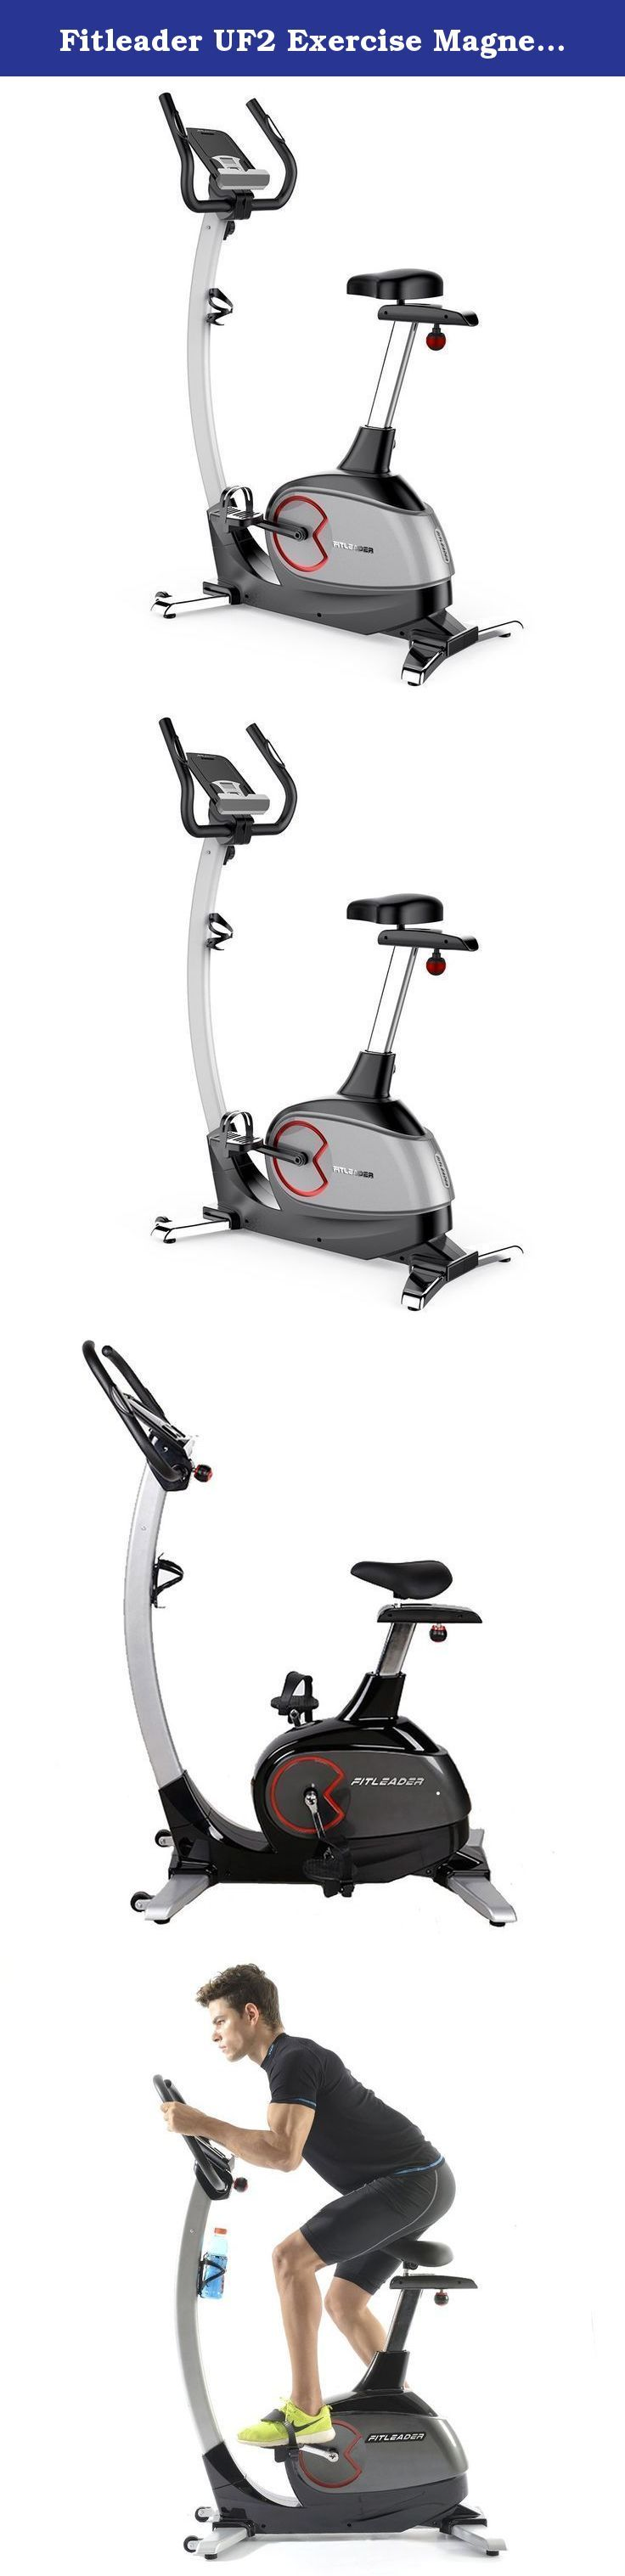 Fitleader UF2 Exercise Magnetic Stationary Flywheel Middle Belt Indoor Upright Bike. Why Choose a Fitleader Upright Bike? Are you still trying to find the best stationary bike for your home gym? If so, the Fitleader UF2 upright bike is the high quality, competitively priced exercise bike you've been looking for! With its eight resistance levels and progress readouts for speed, RPM, time, distance, watts, calories and pulse, the UF2 is exactly what you need to achieve your fitness goals....